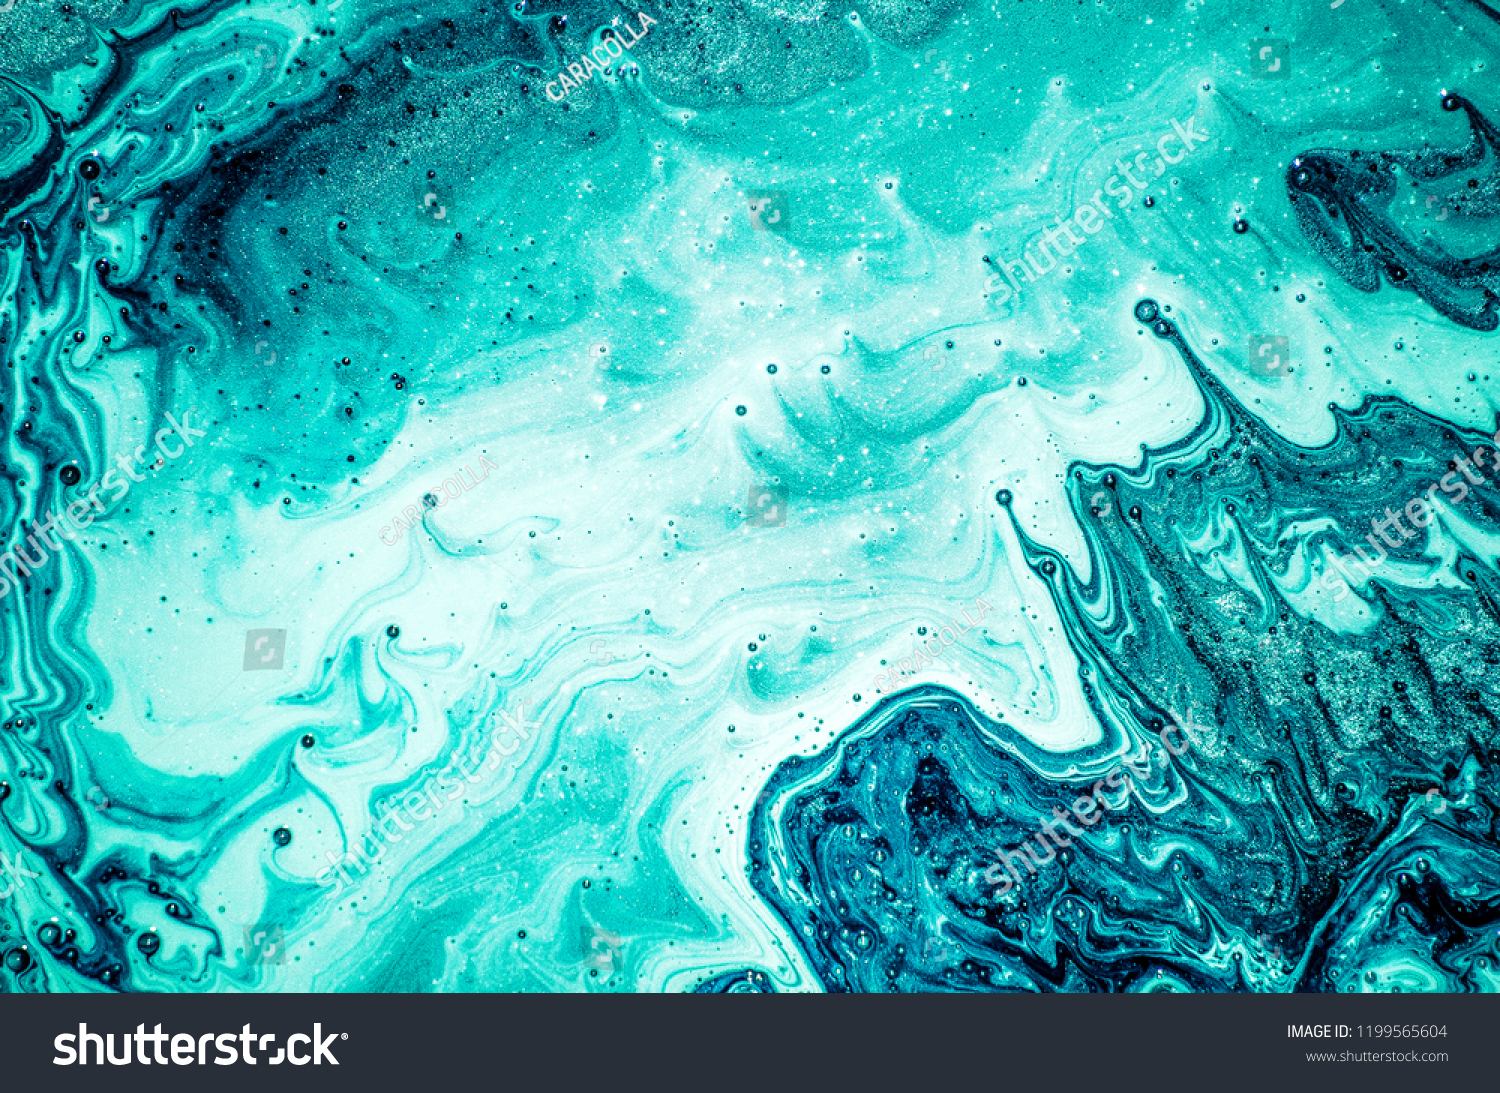 Aquamarine luxury art in Eastern style. Natural Pattern. Abstract artwork. Beautiful decor for invitation, greeting card, wallpaper, background. Style incorporates the swirls of marble. #1199565604